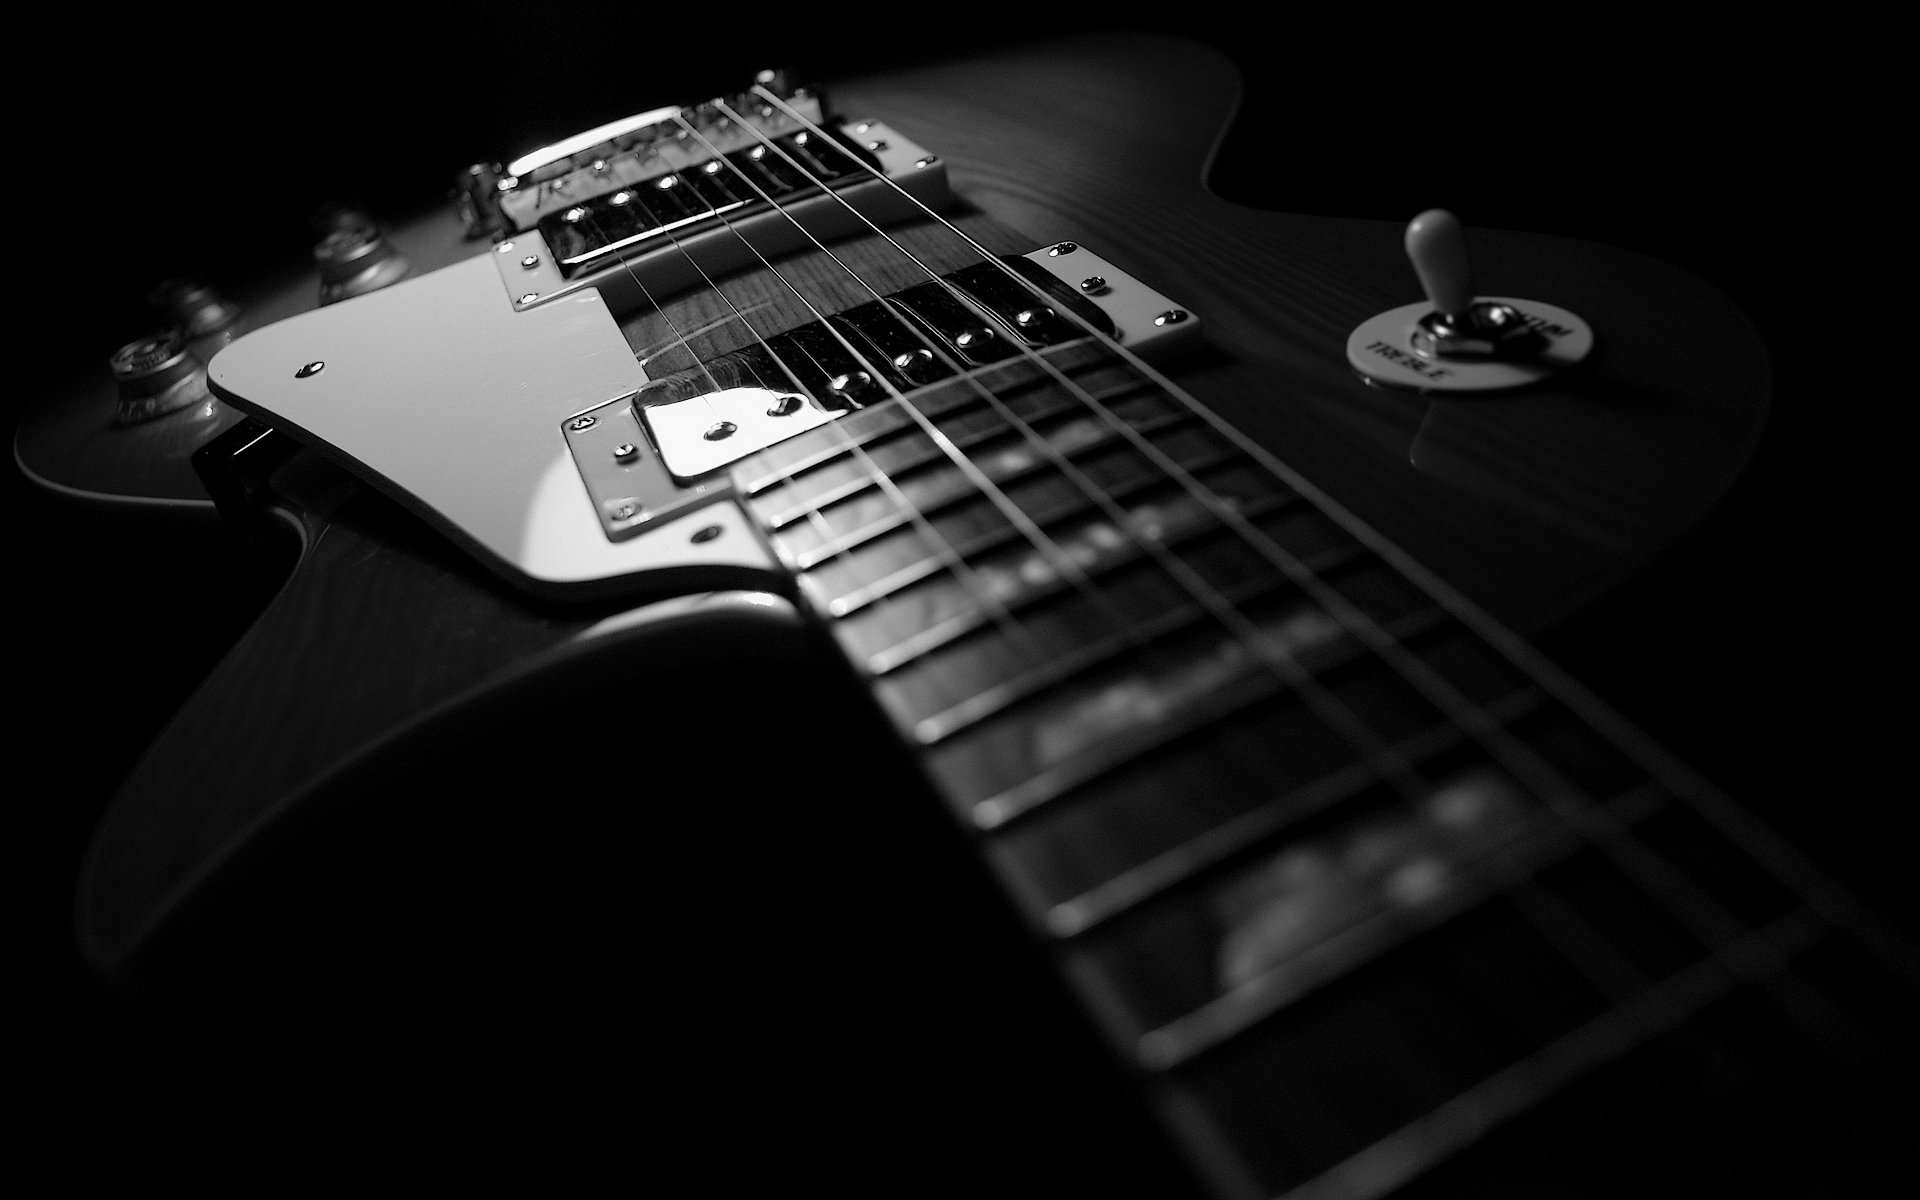 Guitar Wallpaper For Pc